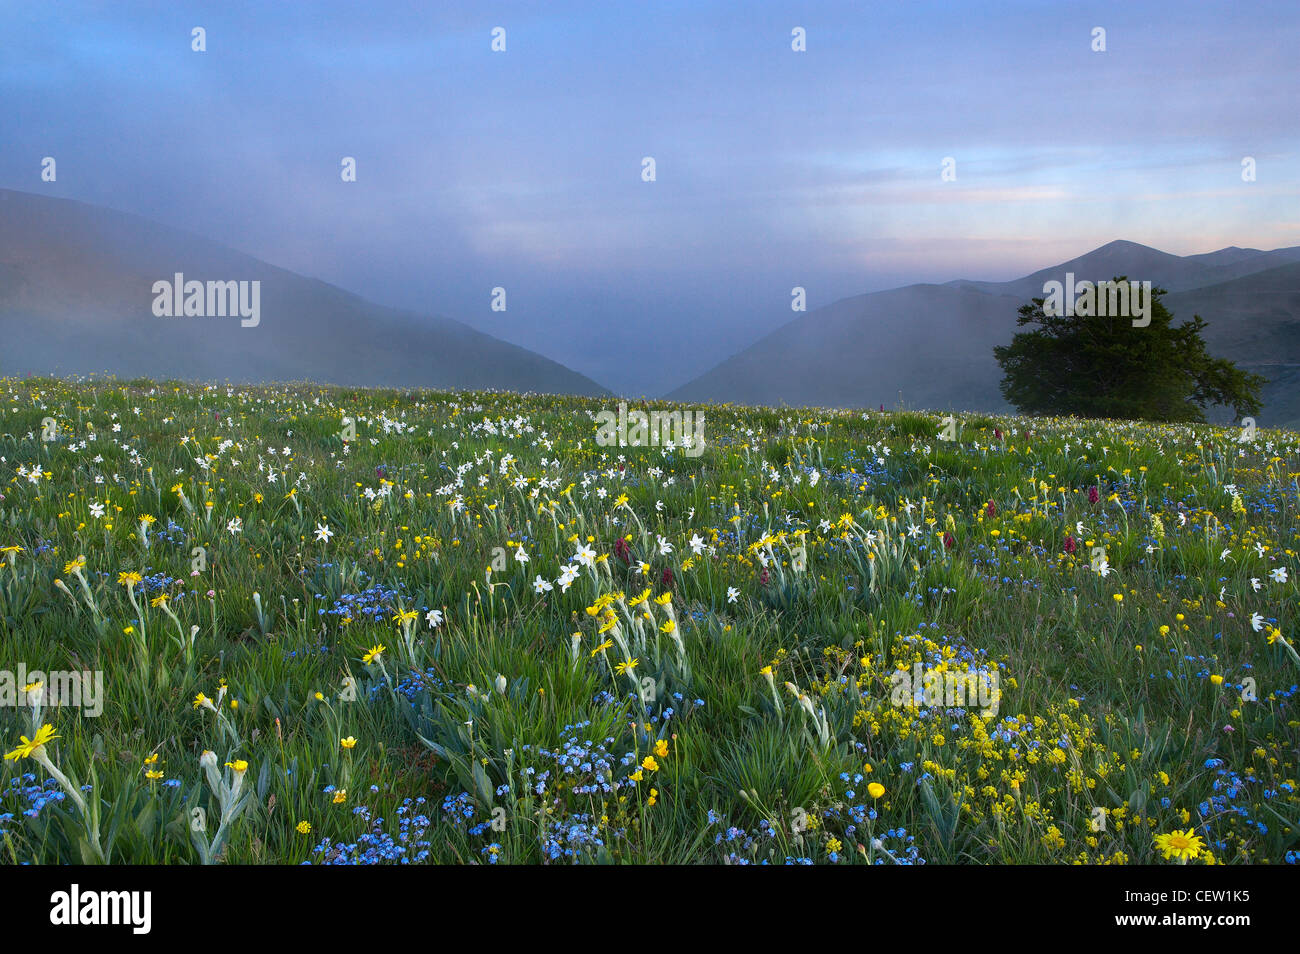 wild flowers growing at the Forca Canapine, Monti Sibillini National Park, Umbria, Italy. (NR) Stock Photo